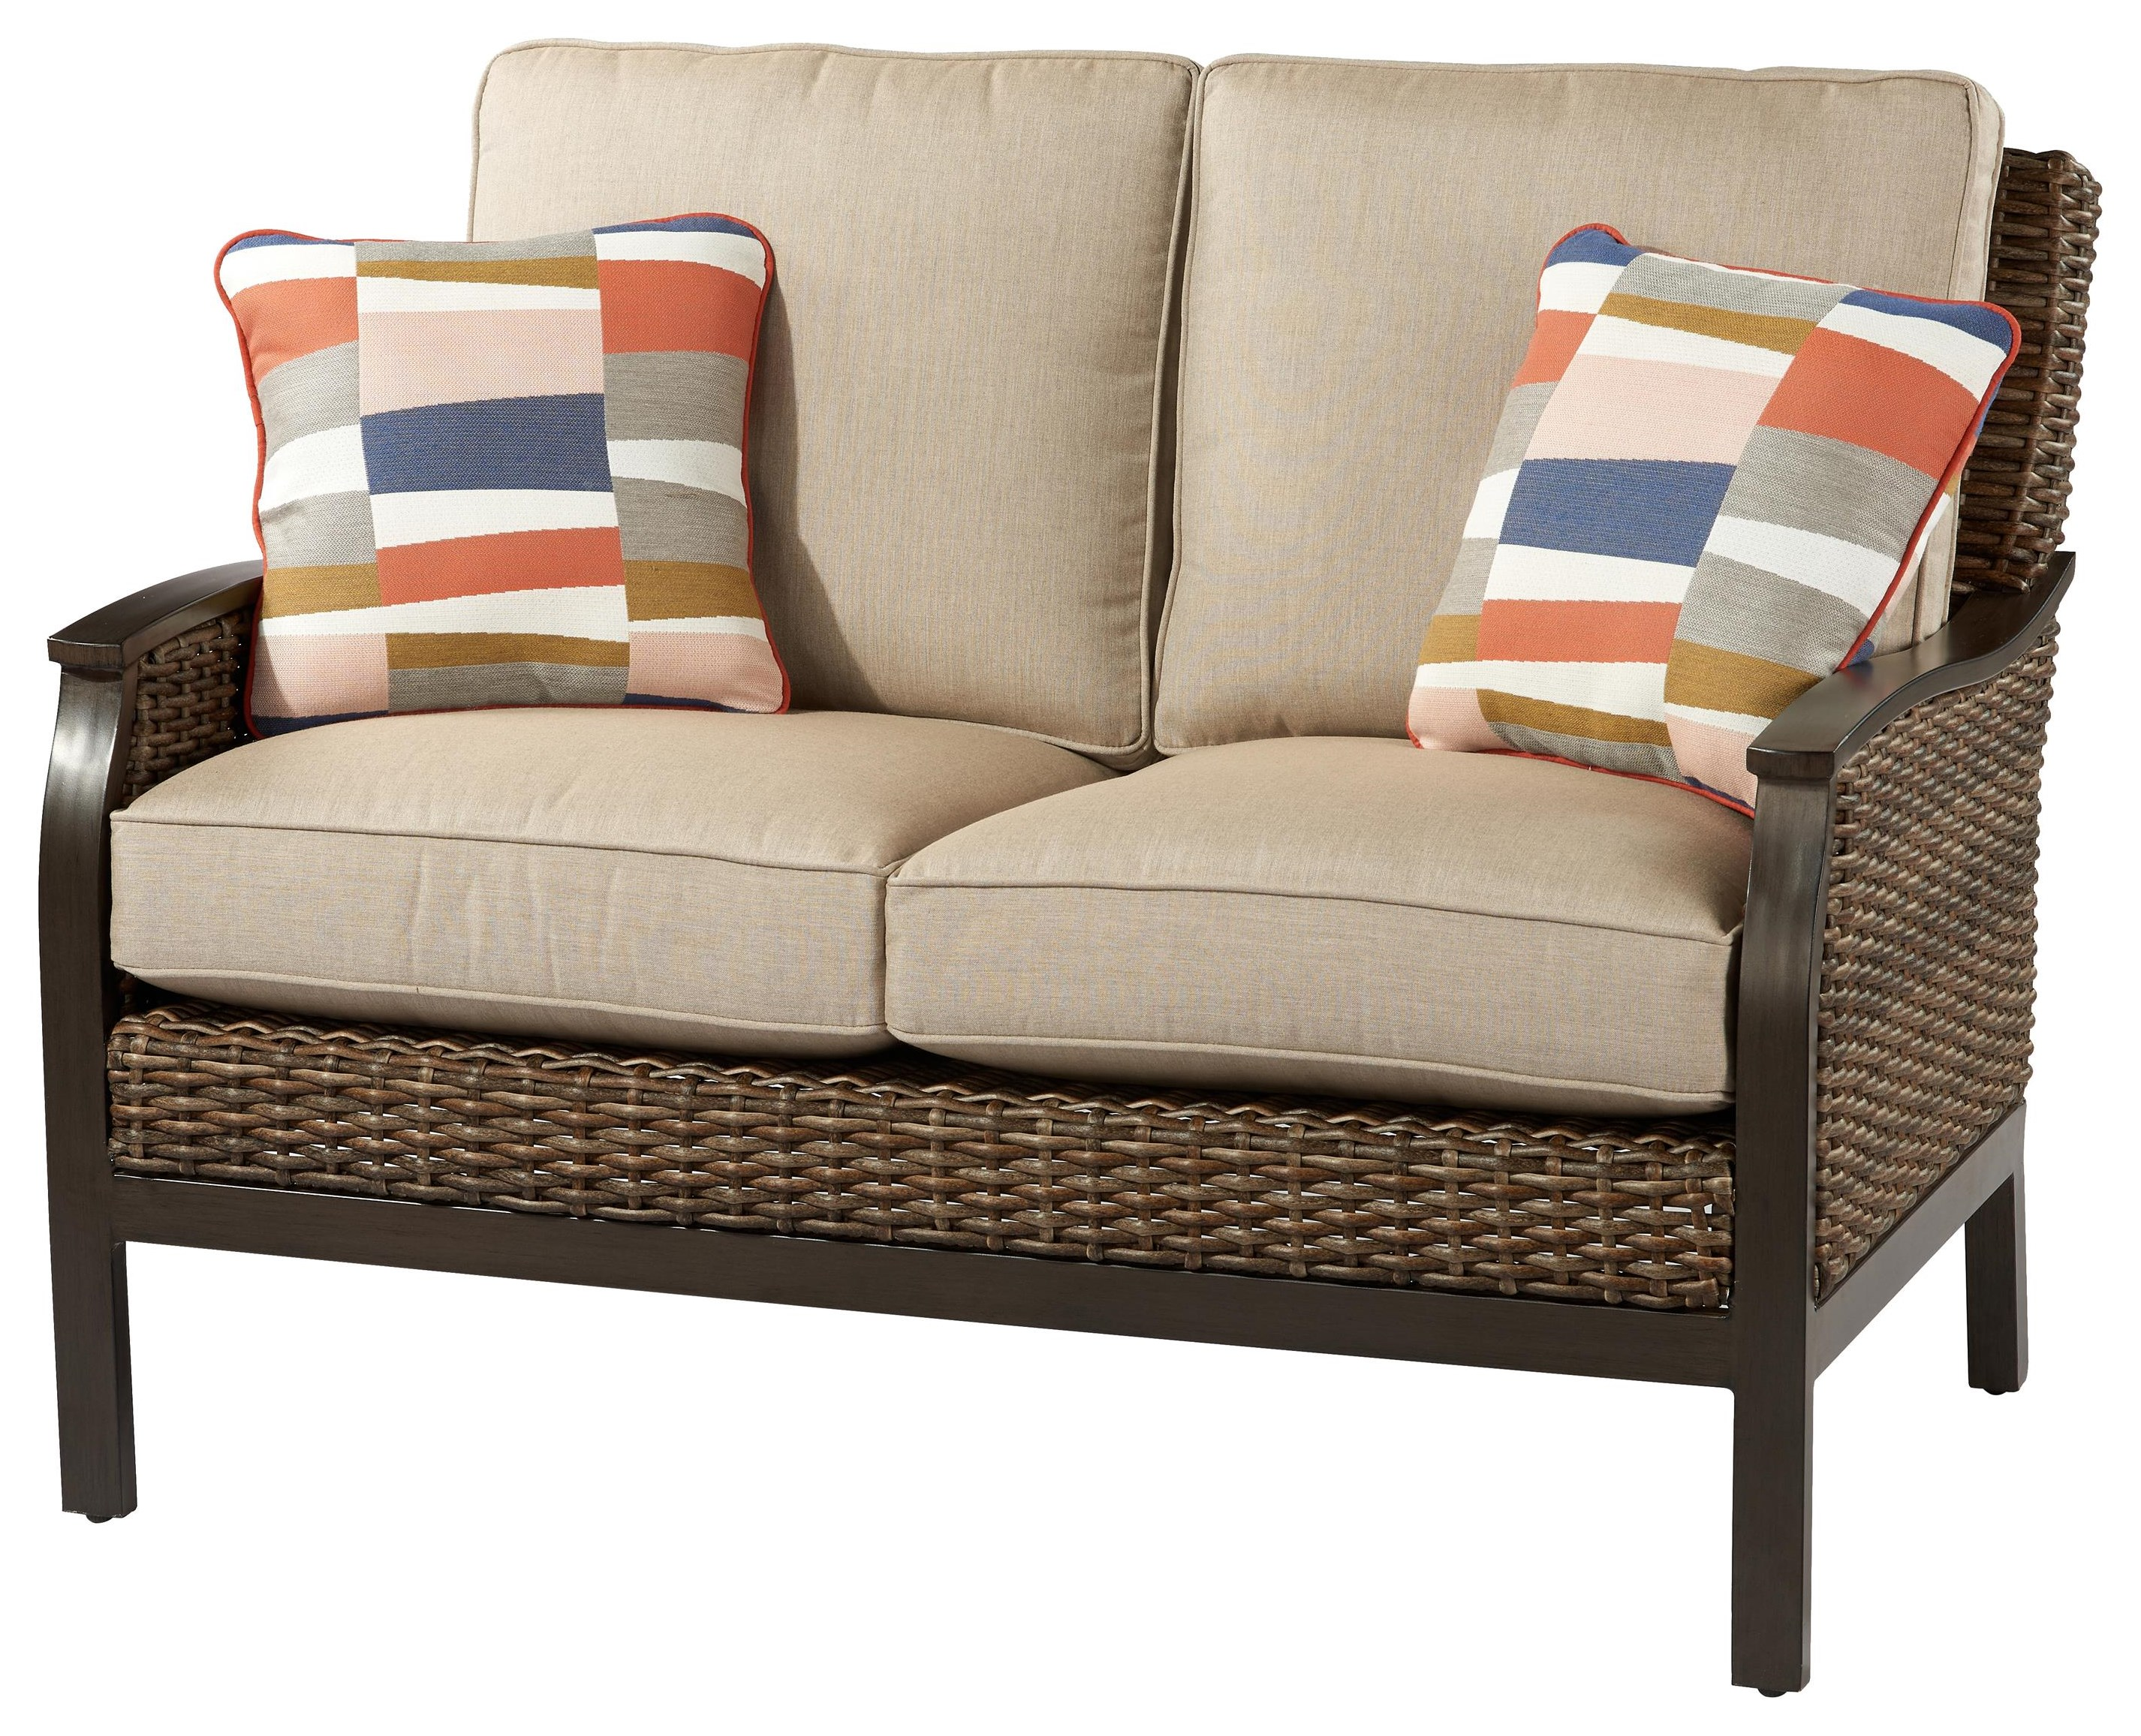 Trenton Loveseat with 2 Pillows by Apricity Outdoor at Johnny Janosik